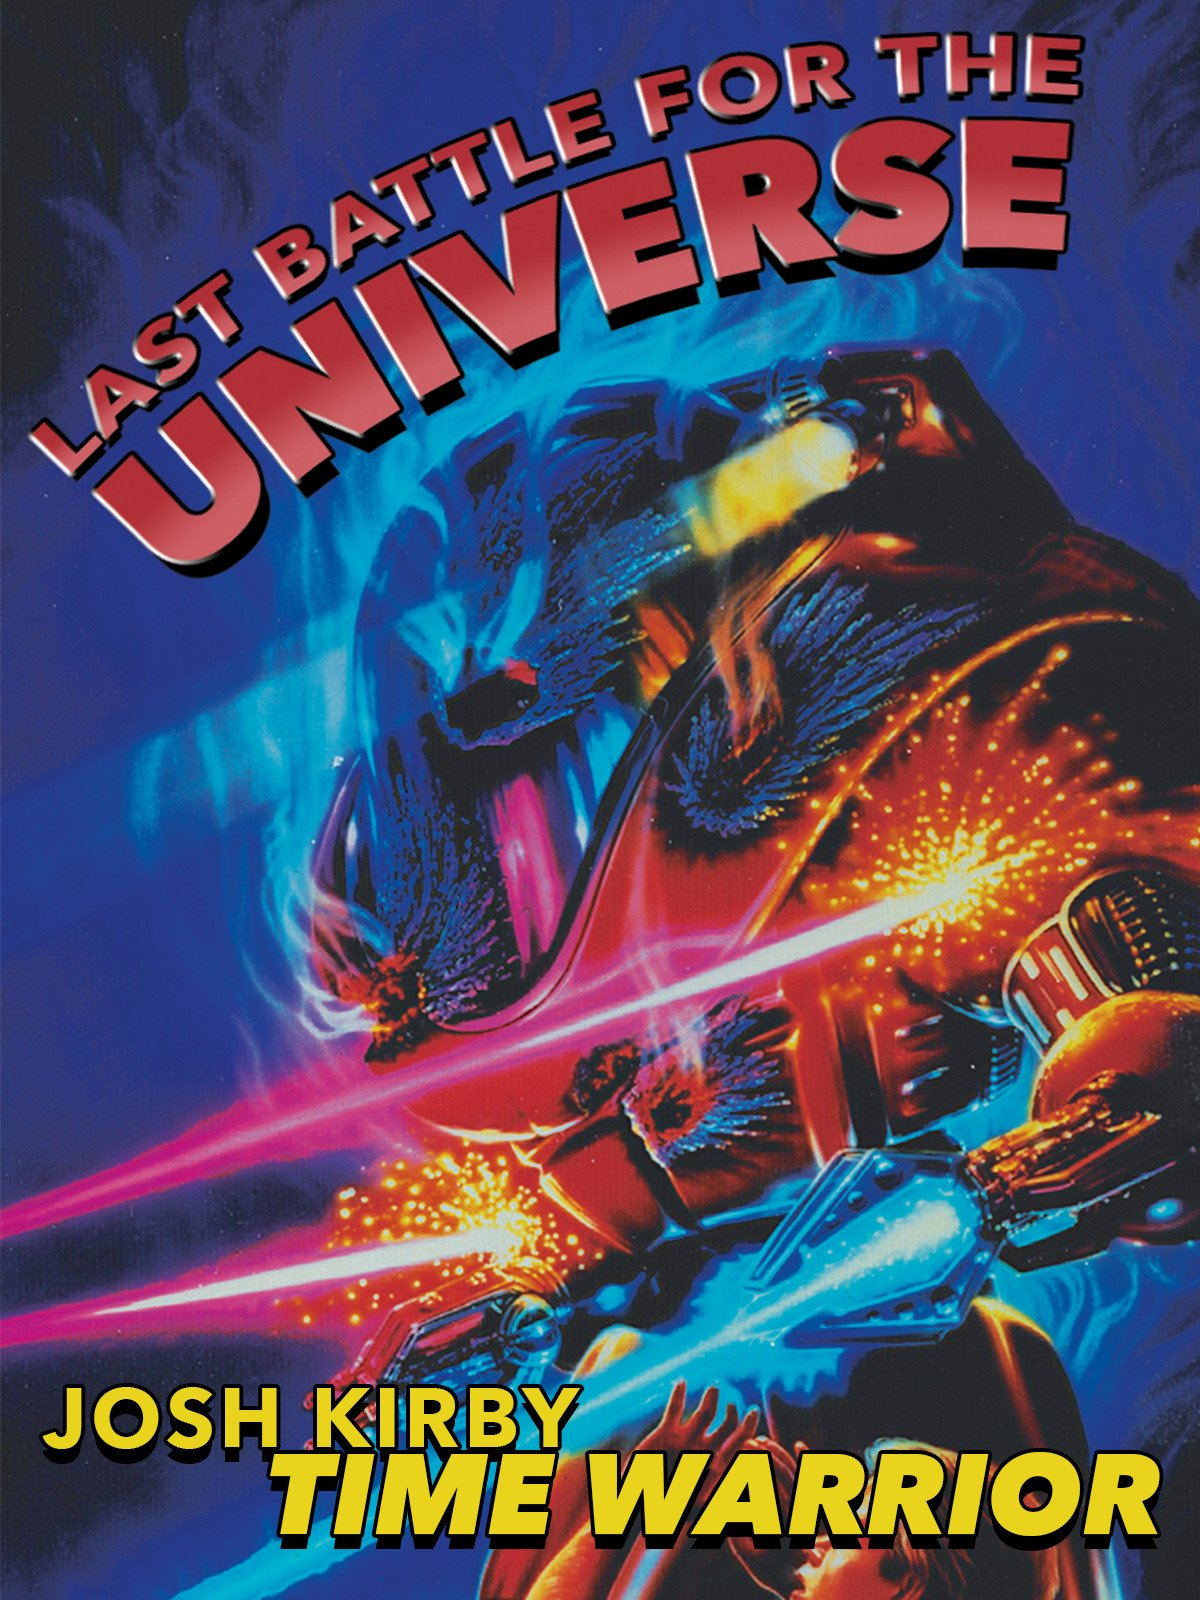 Josh Kirby Time Warrior: The Last Battle for the Universe